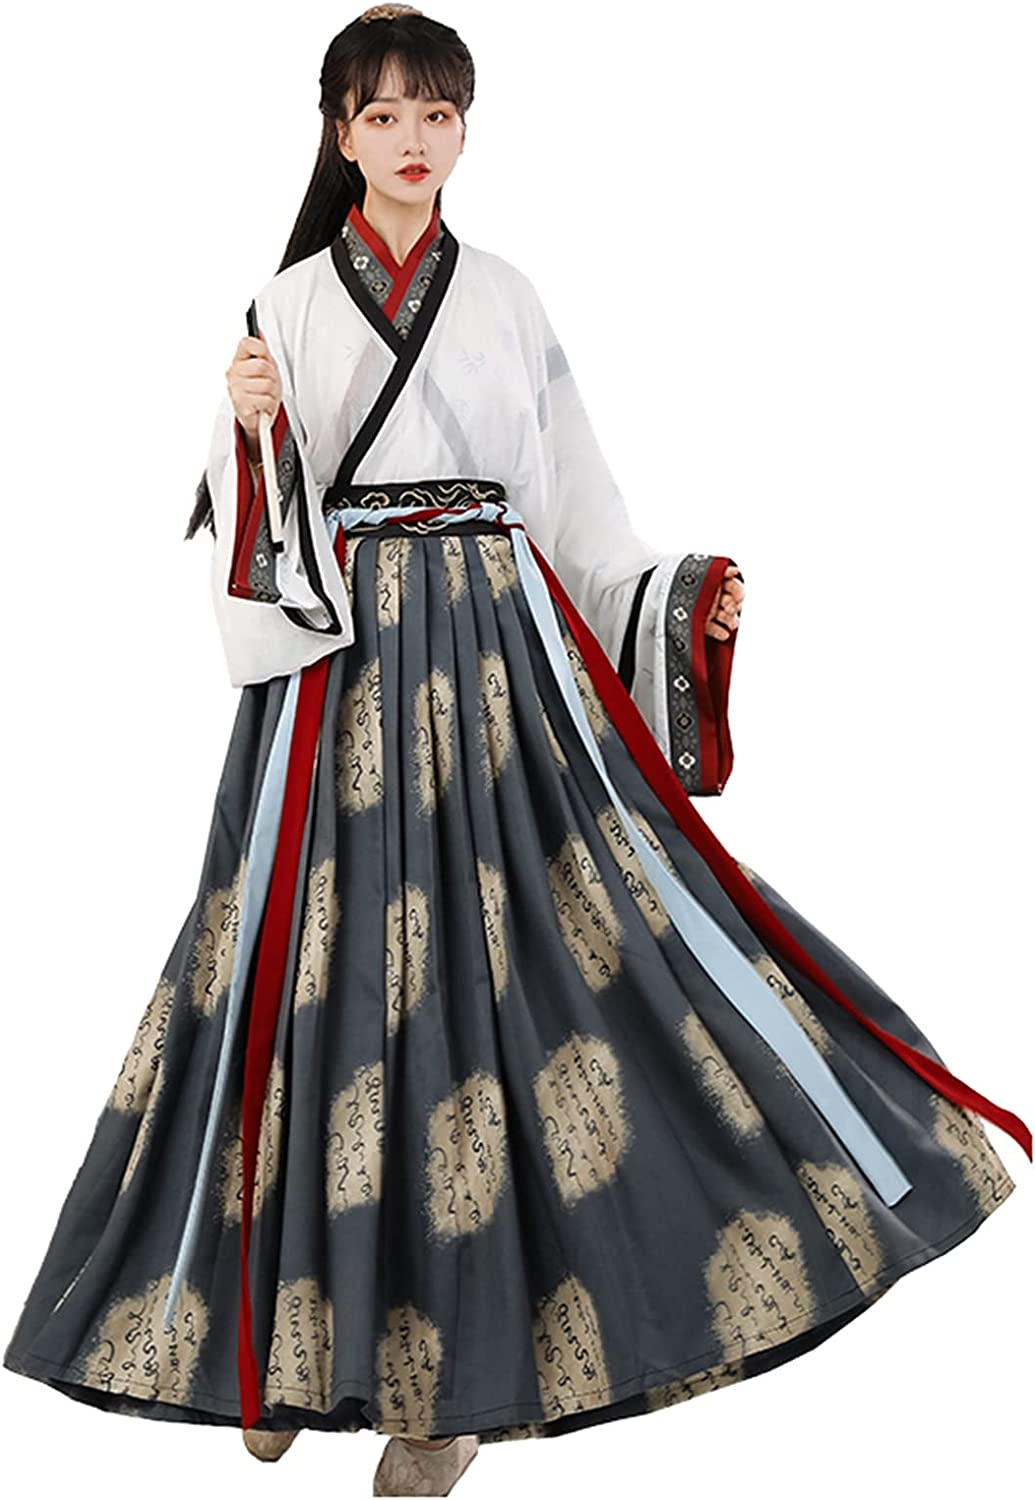 YANLINA Hanfu Chinese Traditional Costume Easy-to-use Garments Embroid 2021 new